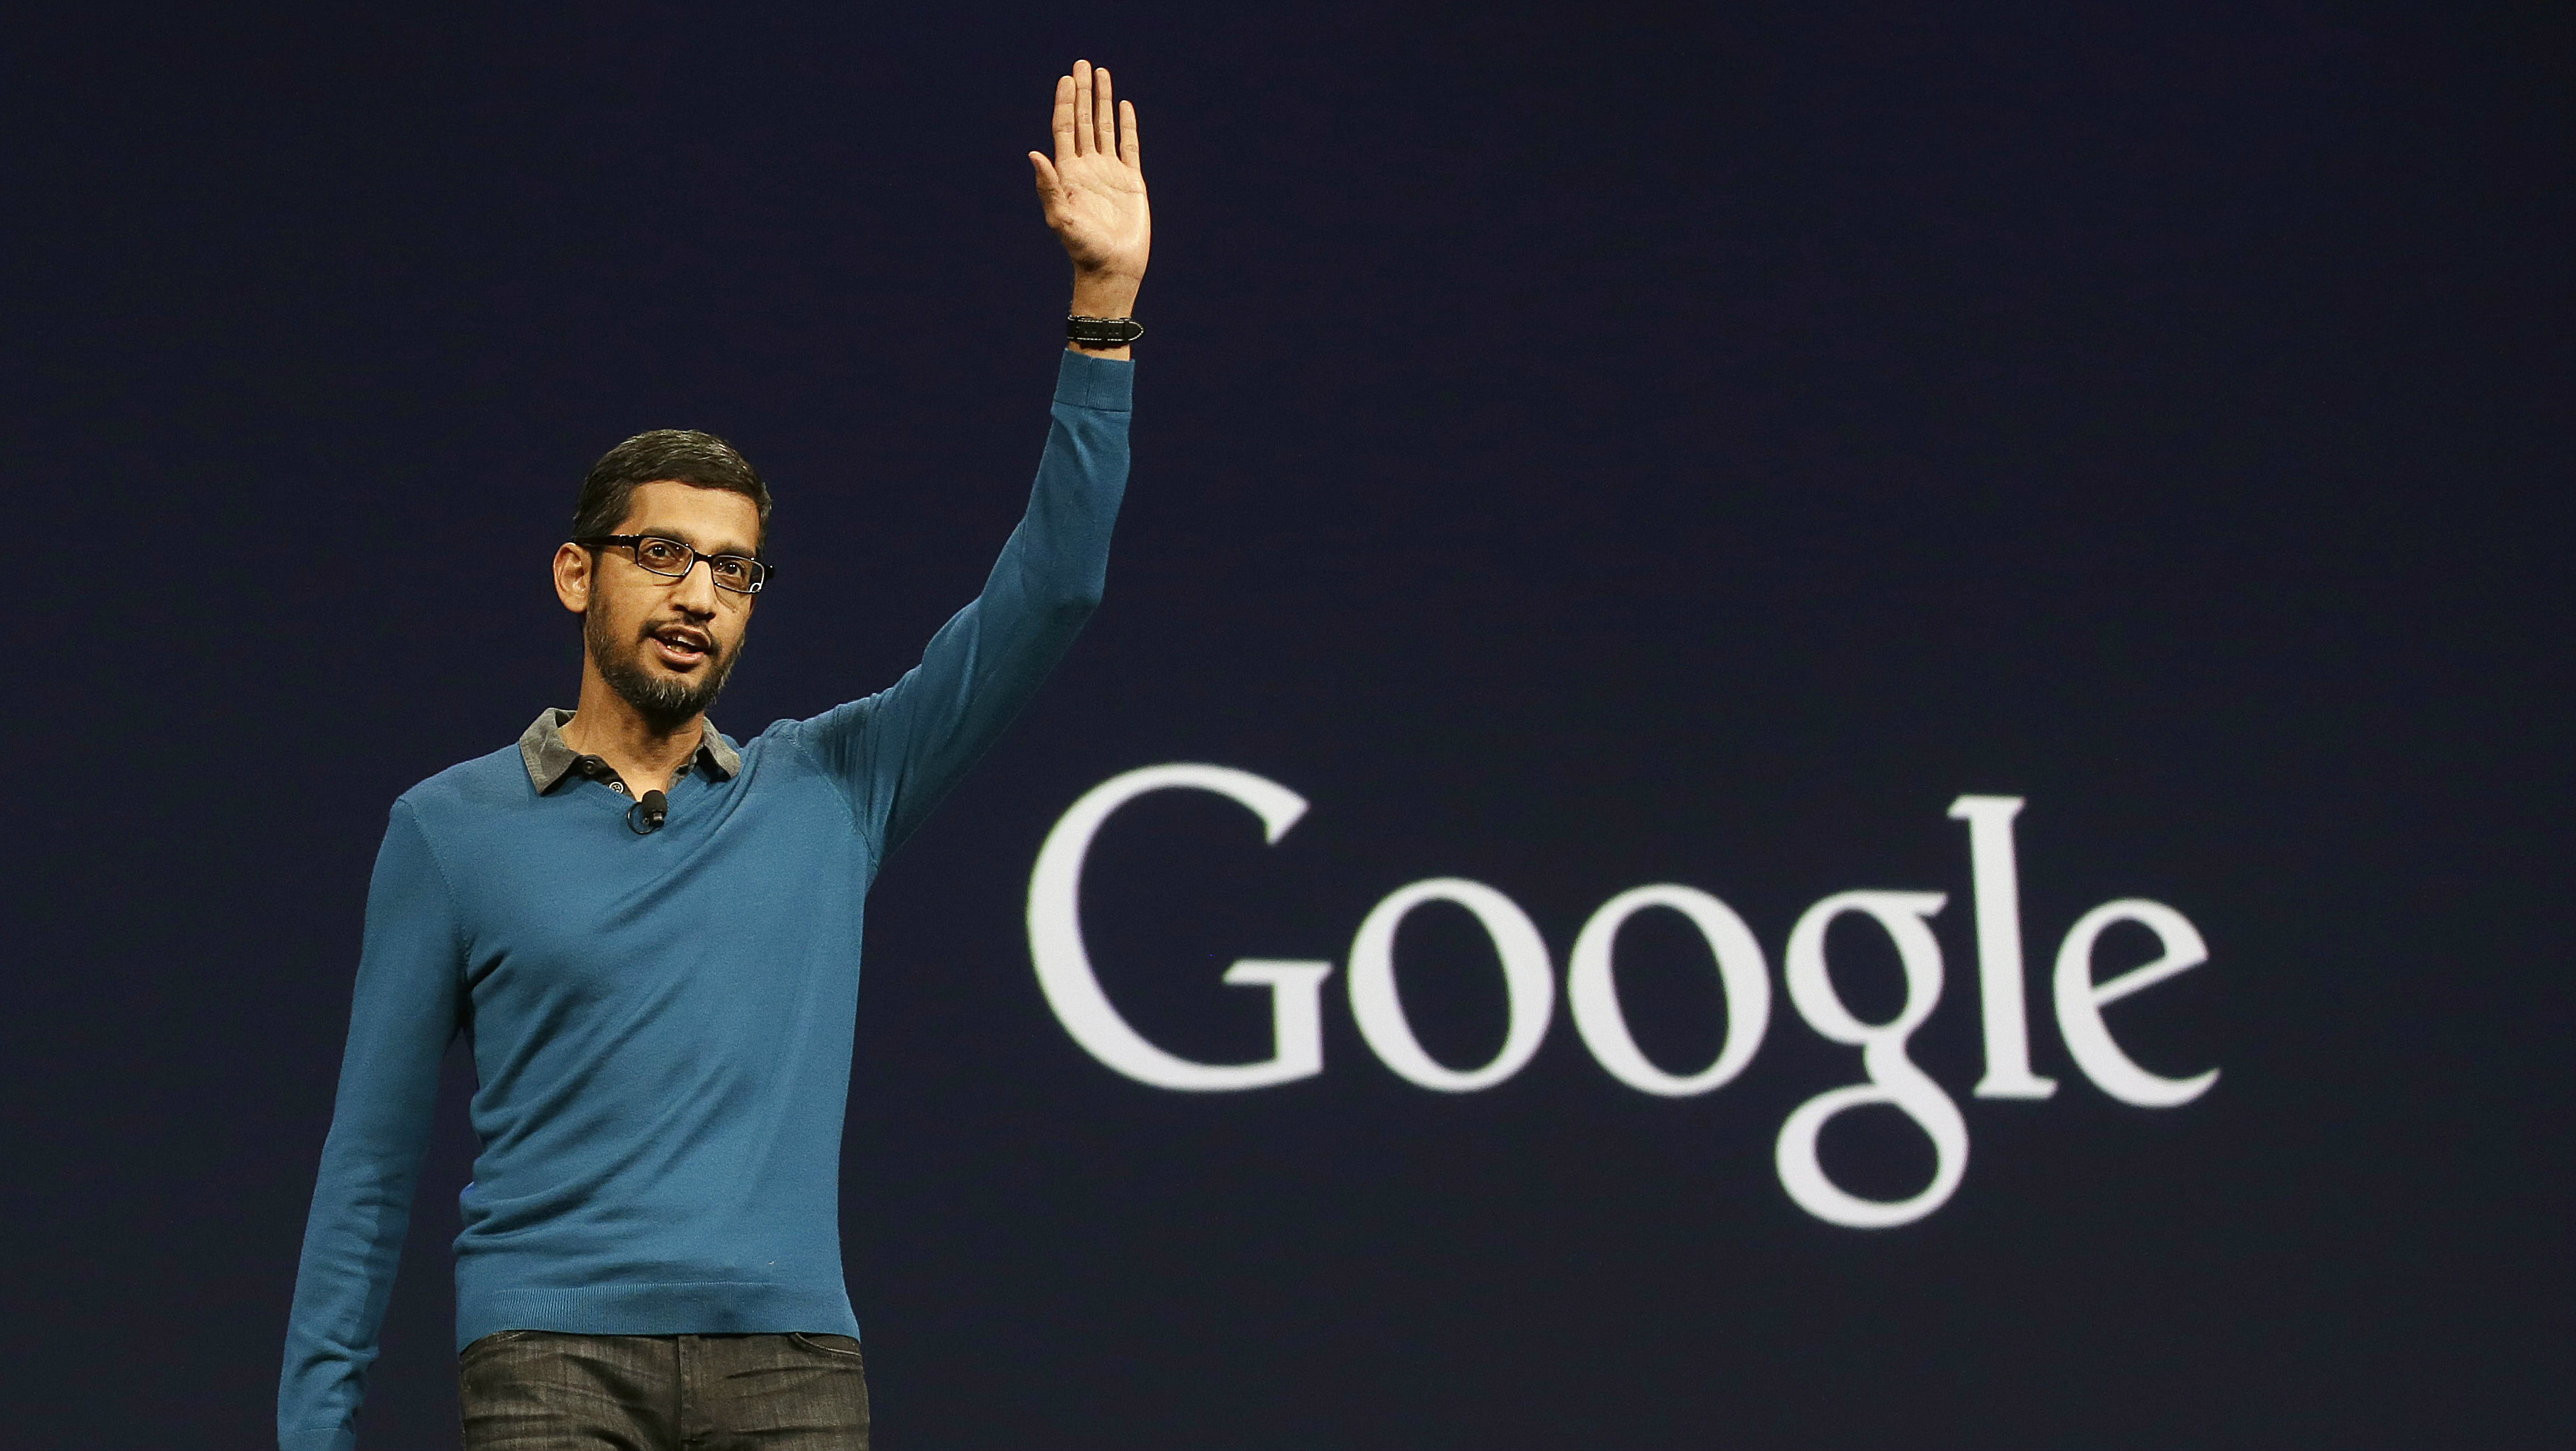 File - In this Thursday, May 28, 2015 file photo, Sundar Pichai, senior vice president of Android, Chrome and Apps, waves after speaking during the Google I/O 2015 keynote presentation in San Francisco. Google is creating a new company, called Alphabet, to oversee its highly lucrative Internet business and a growing flock of other ventures, including some — like building self-driving cars and researching ways to prolong human life — that are known more for their ambition than for turning an immediate profit. Pichai will become CEO of Google's core business, including its search engine, online advertising operation and YouTube video service. (AP Photo/Jeff Chiu, File)